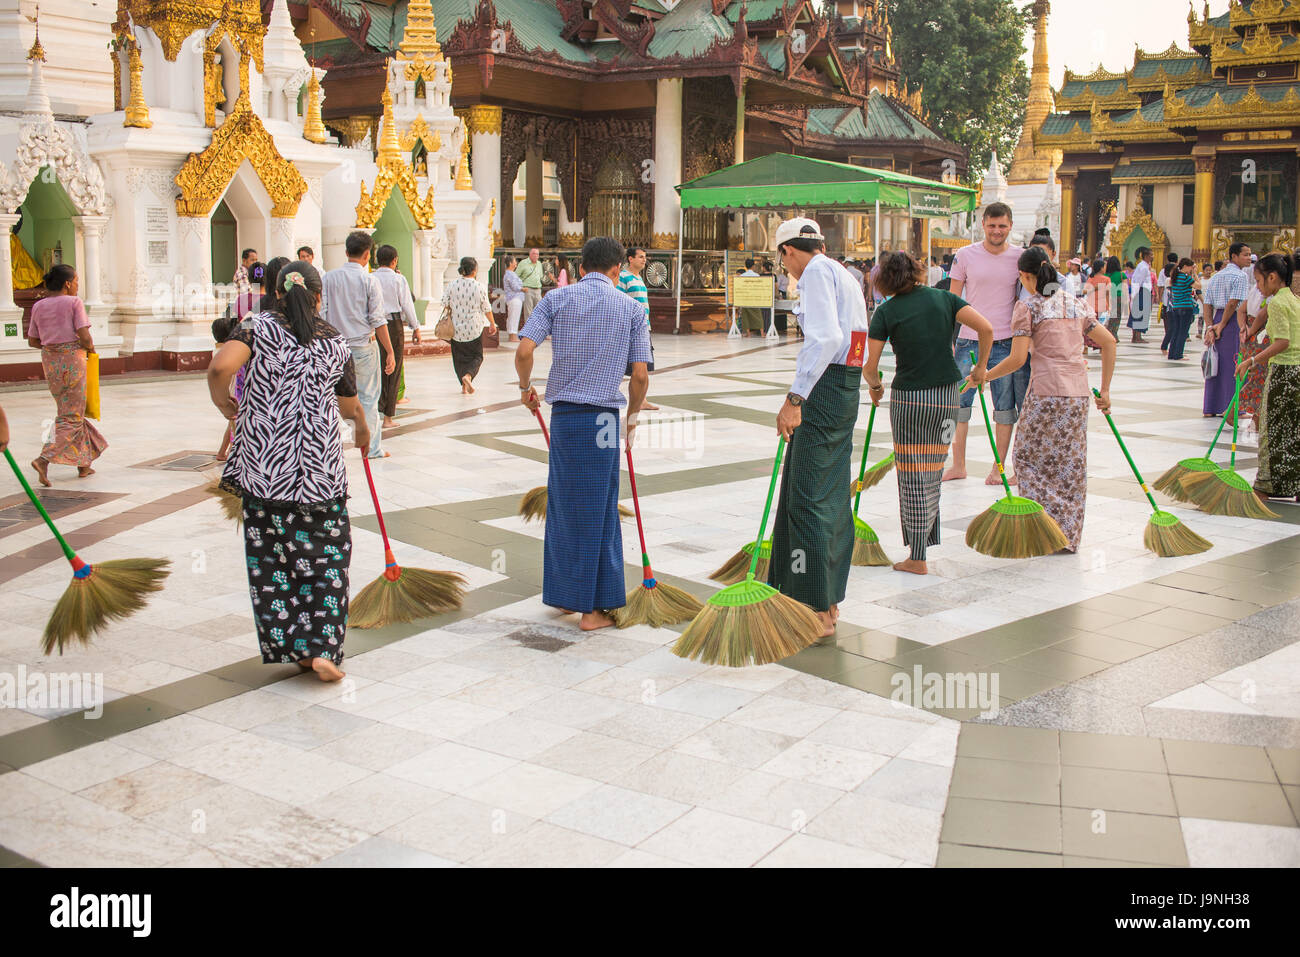 Cleaning the floor with the softest brooms ever. Shwedagon Pagoda, Yangon, Myanmar. - Stock Image